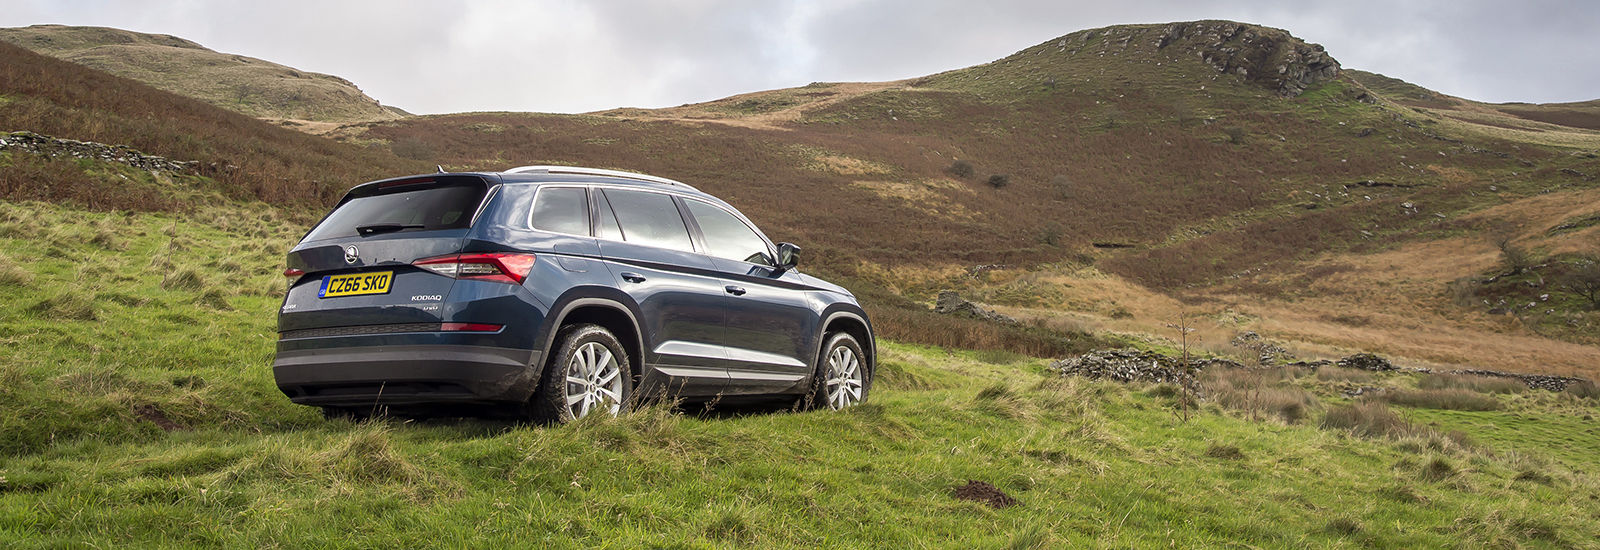 Skoda Kodiaq size and dimensions guide | carwow